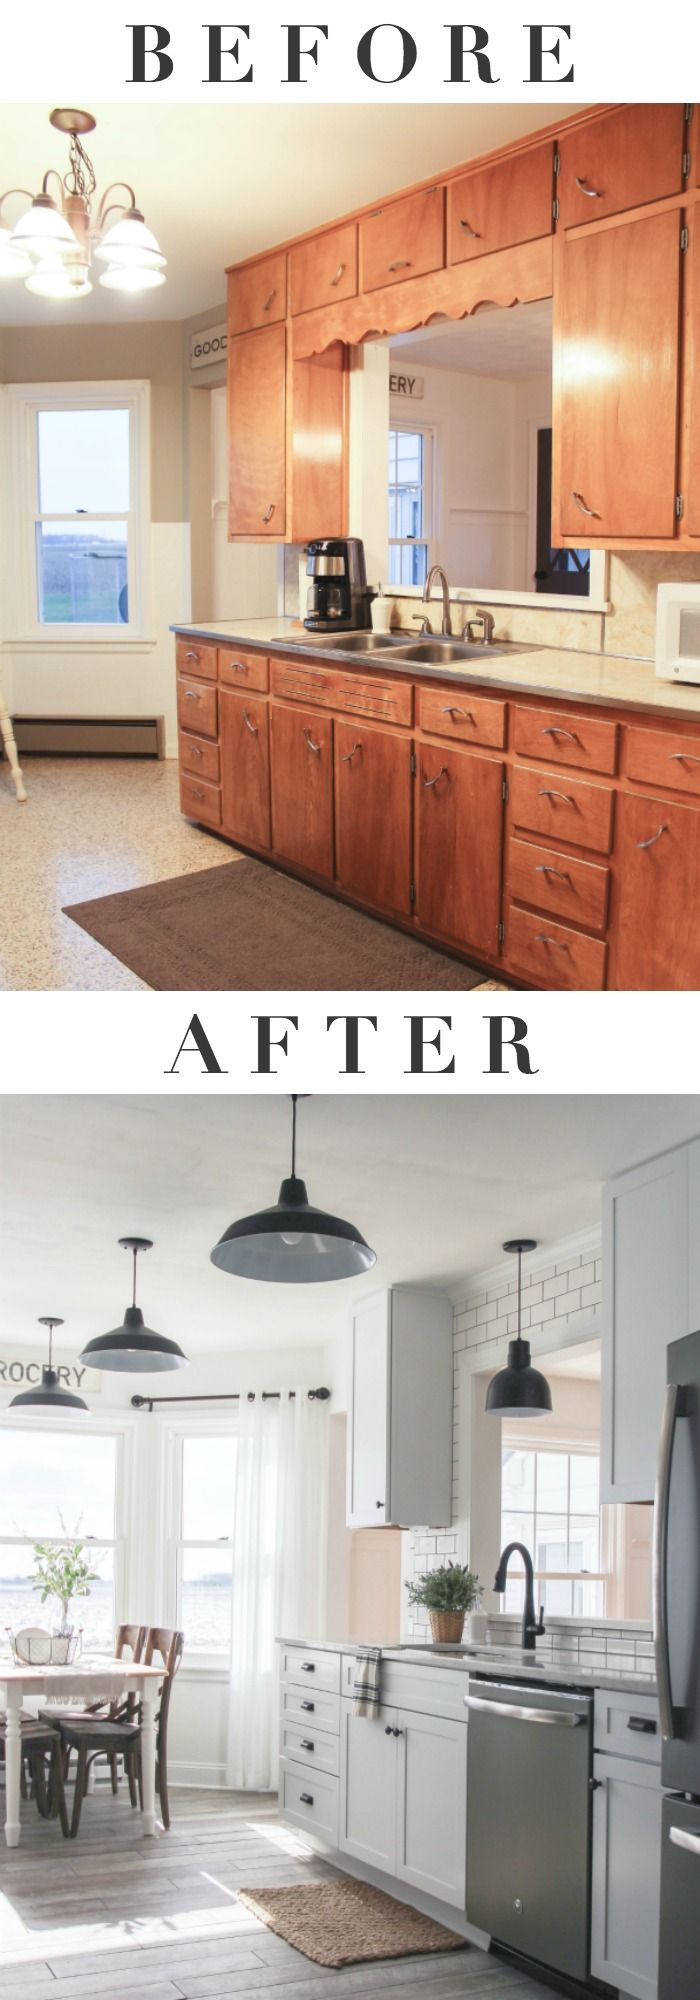 This Indiana farmhouse got a BIG kitchen makeover! Click